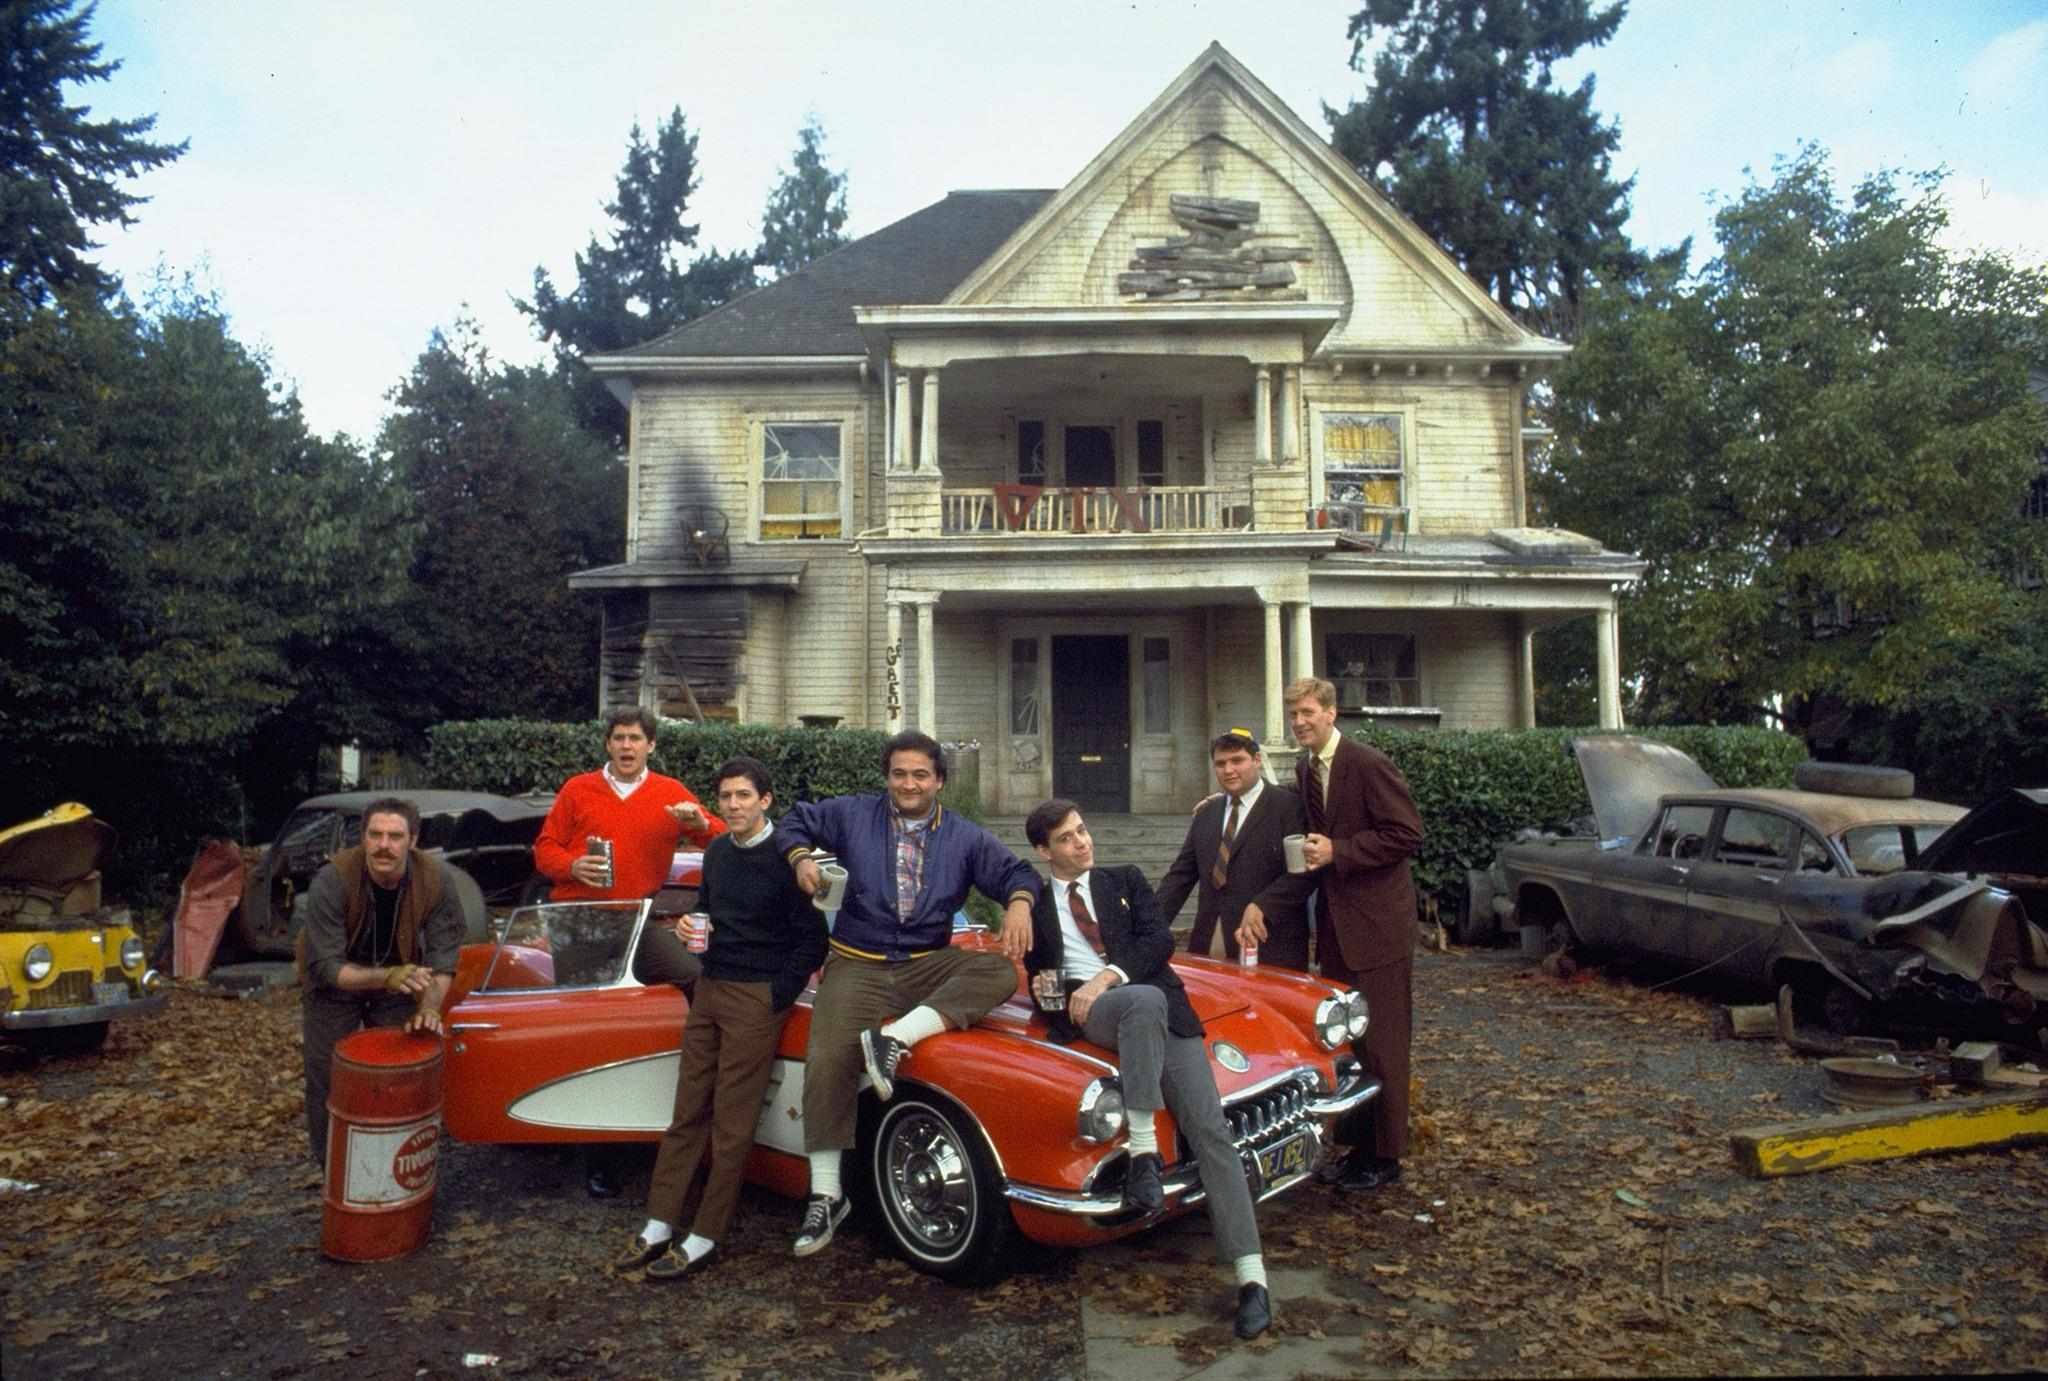 still-of-john-belushi_-tom-hulce_-tim-matheson_-stephen-furst_-bruce-mcgill_-peter-riegert-and-james-widdoes-in-animal-house-_1978_-large-picture.jpg